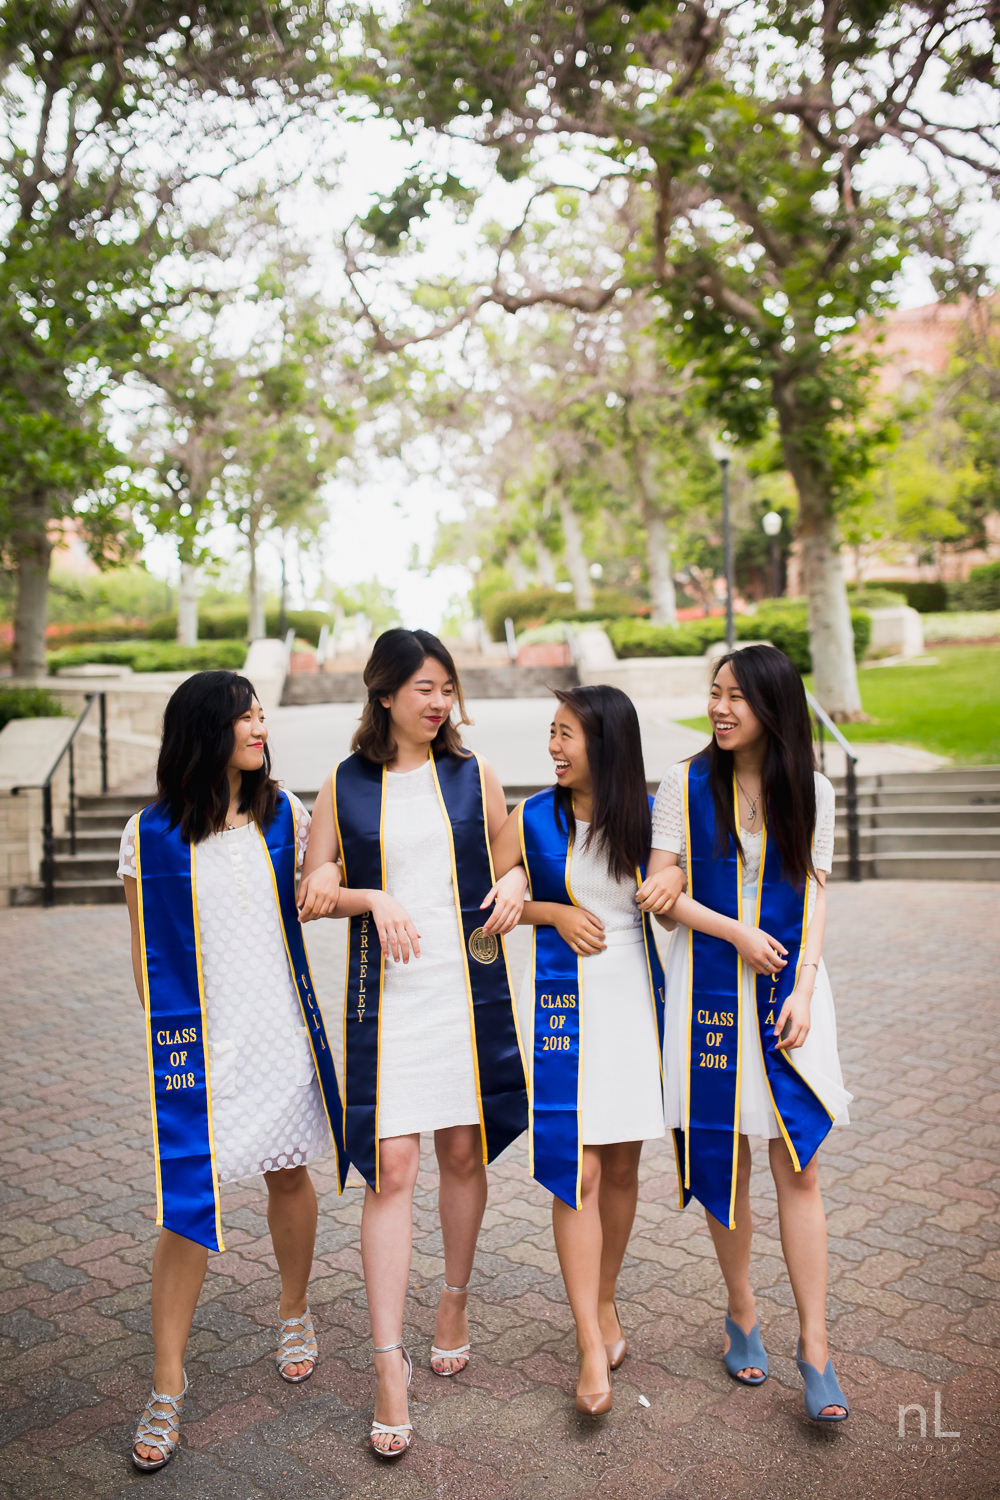 los-angeles-ucla-graduation-portraits-9873.jpg